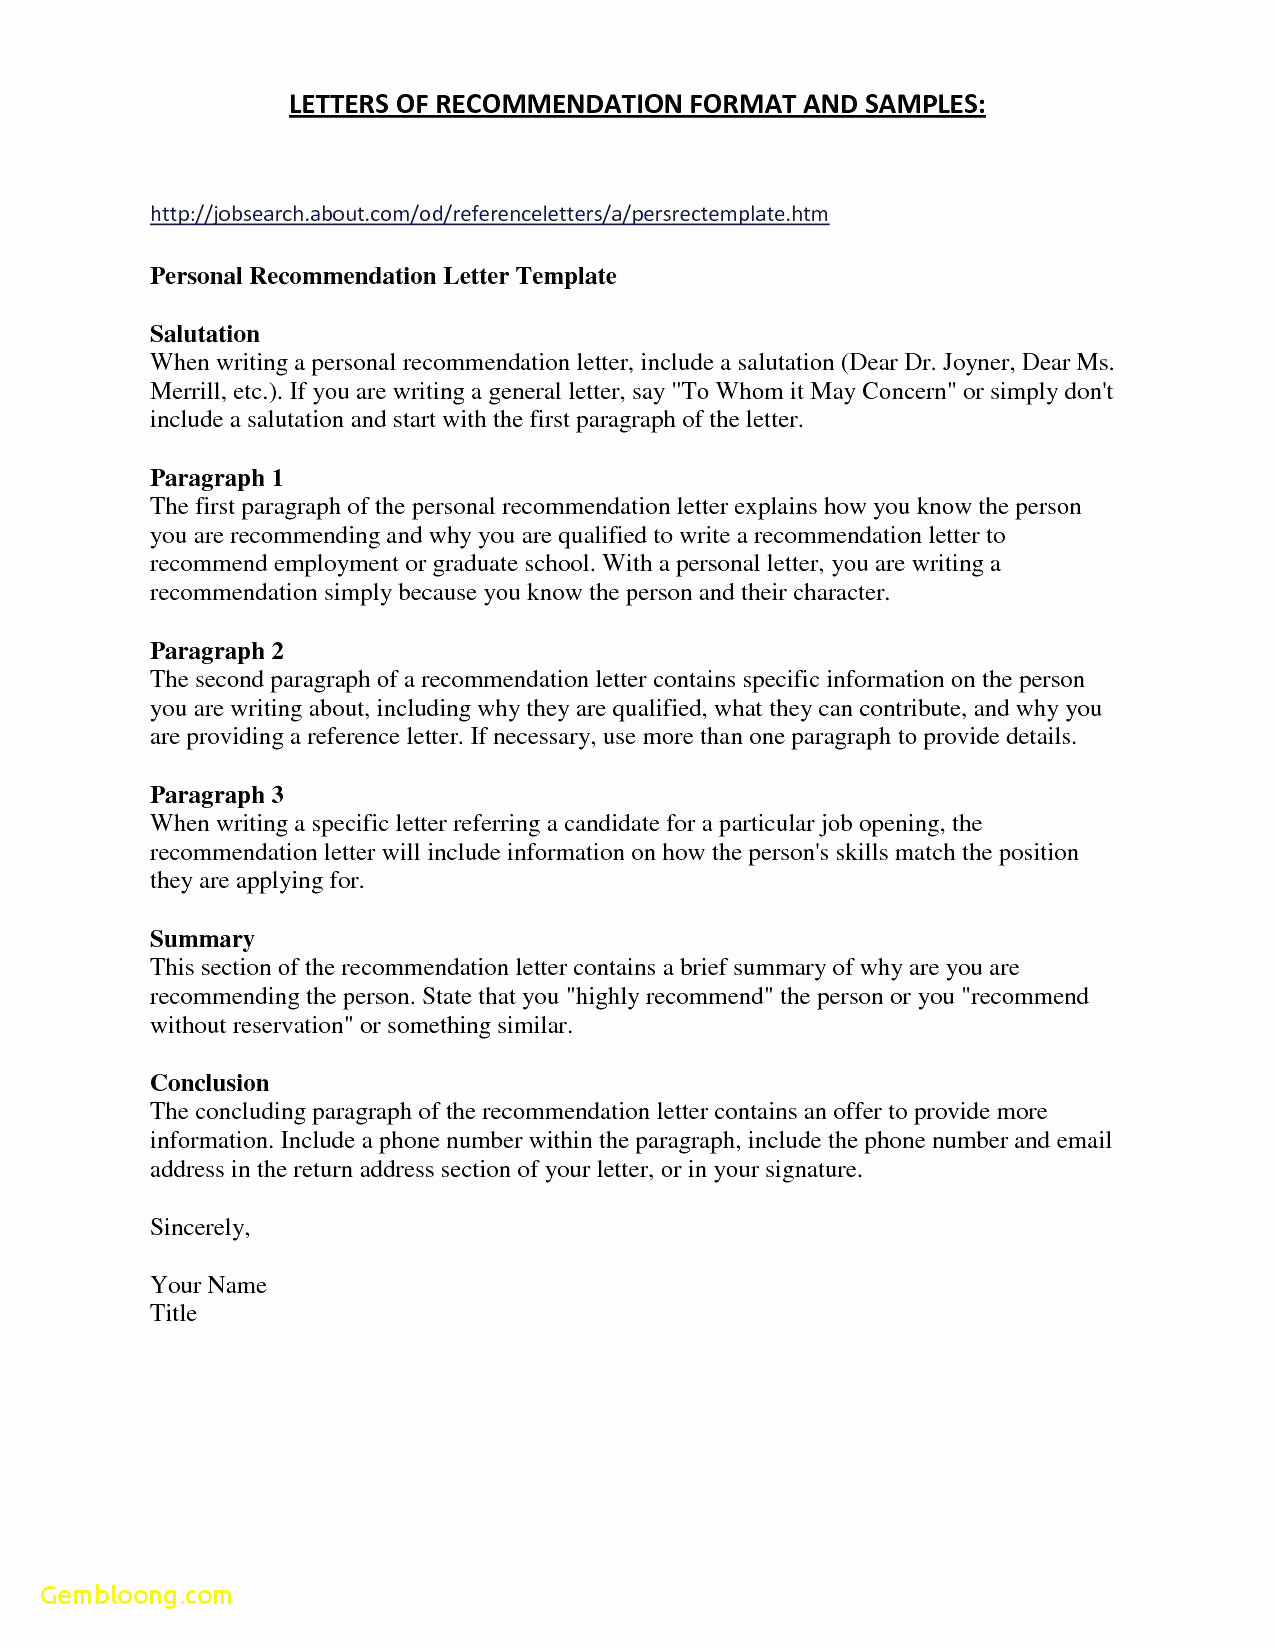 Letter Of Recommendation Template for Student - Personal Re Mendation Letter for Employment Lovely References for